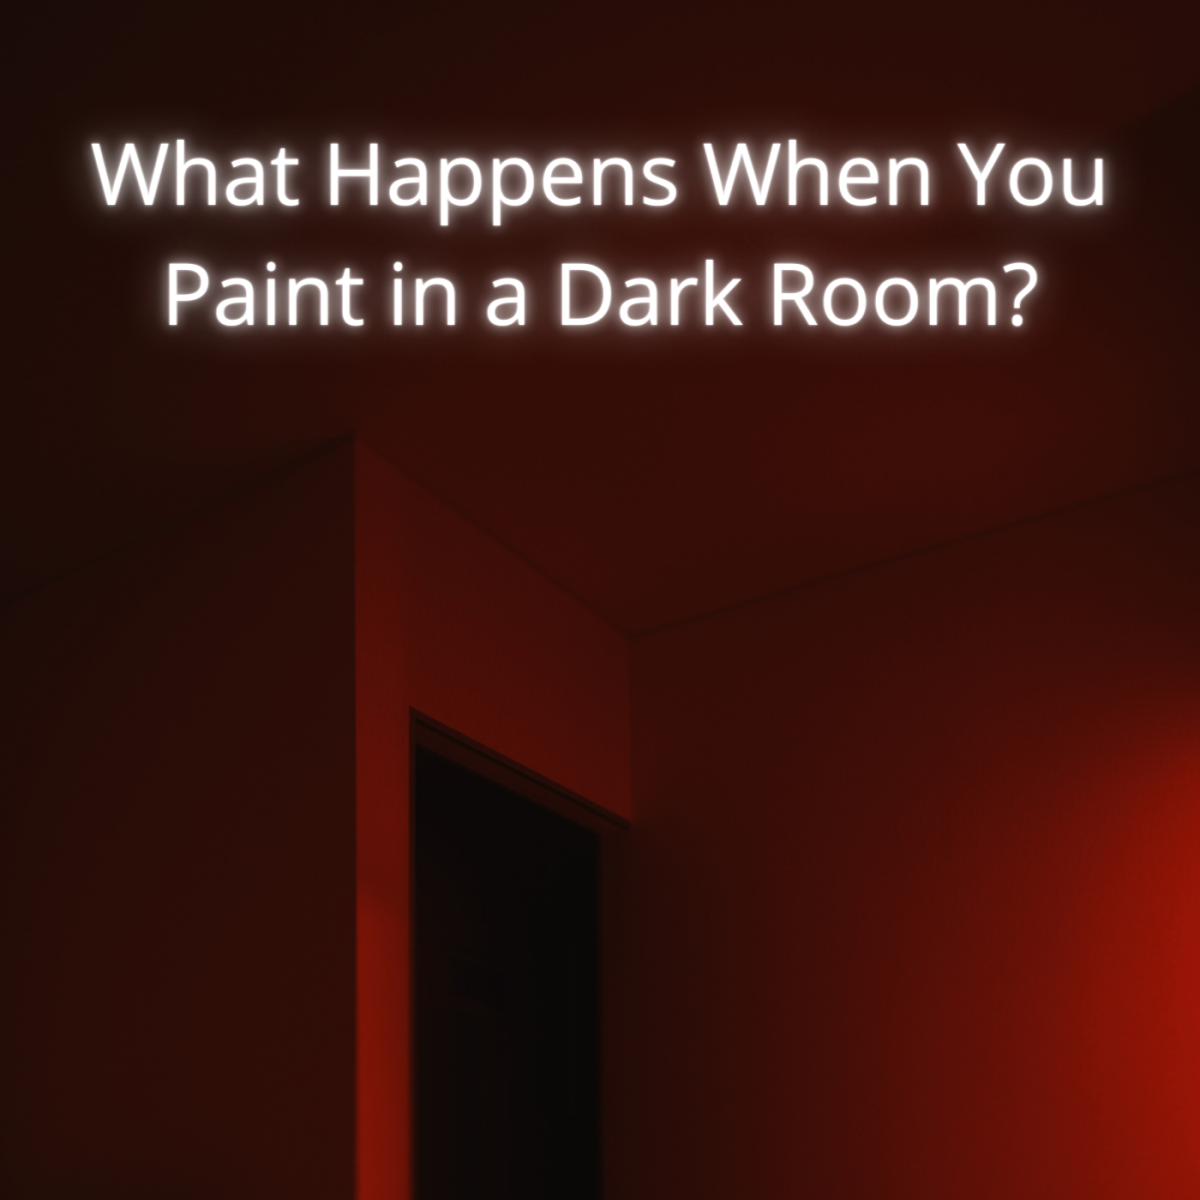 crazy-colors-what-happens-when-you-paint-in-a-dark-room